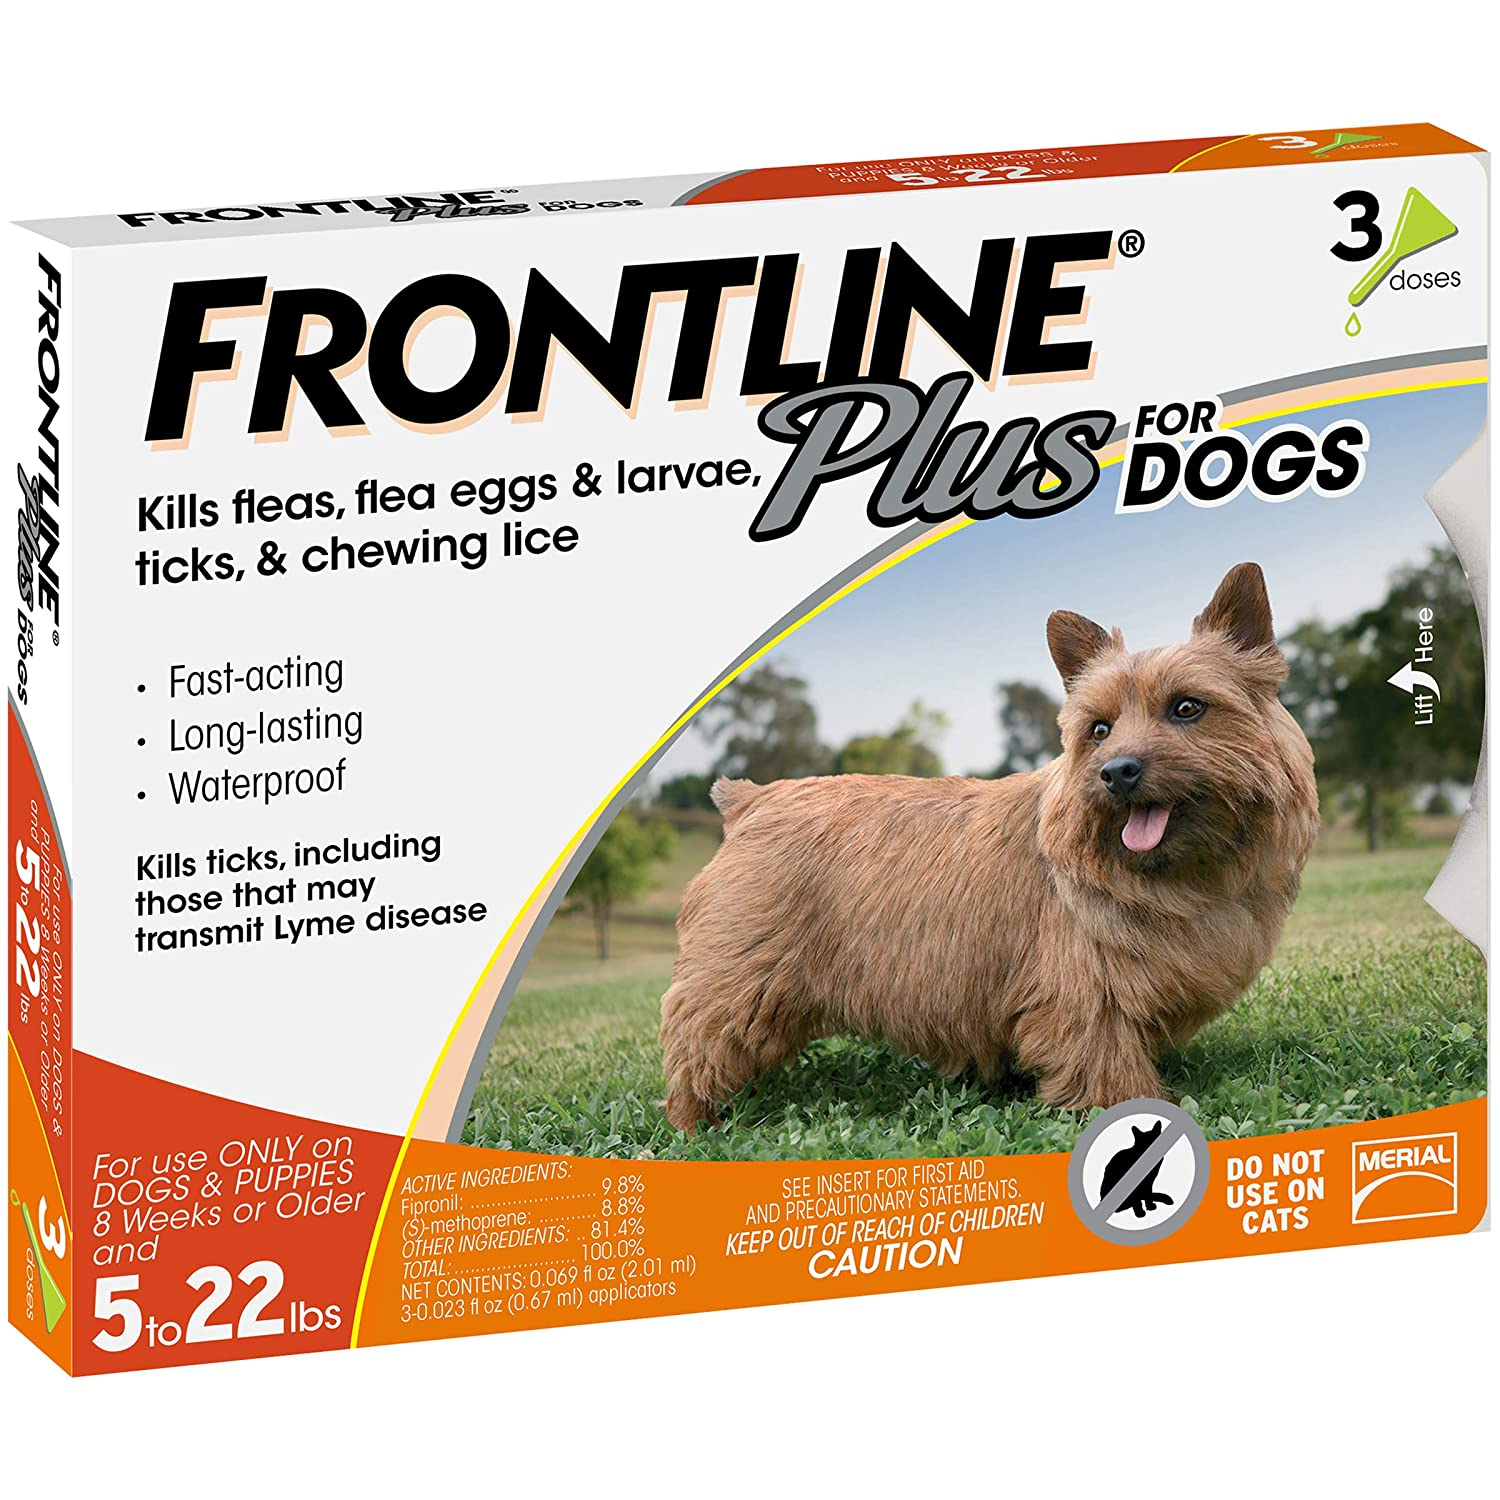 amazon com frontline plus for dogs 022 lbs orange 3 month pet rh amazon com